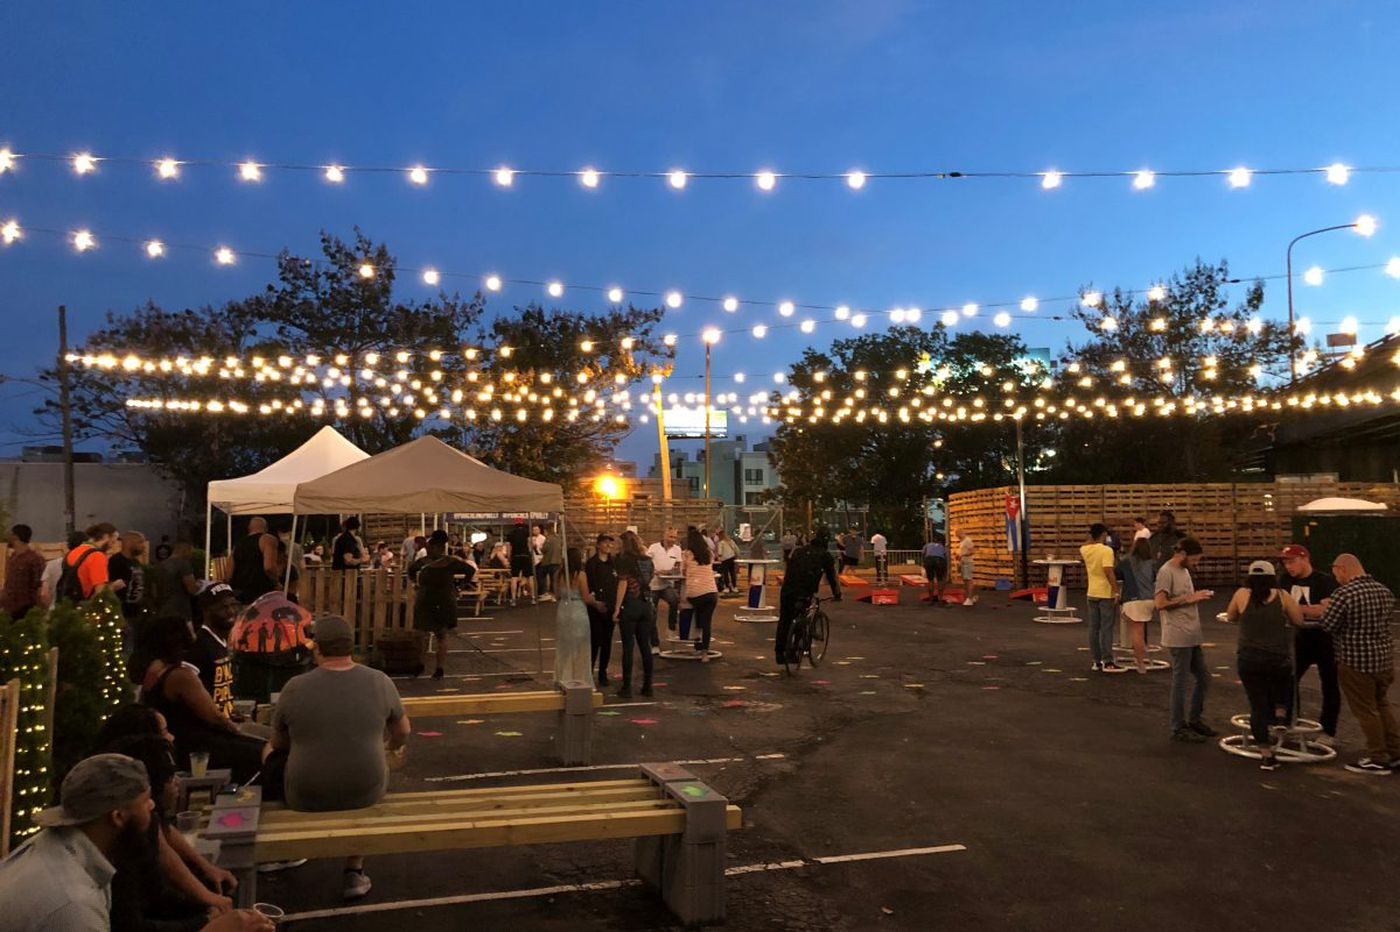 Questlove to appear at opening of Fish Tank, a beer garden at Fillmore